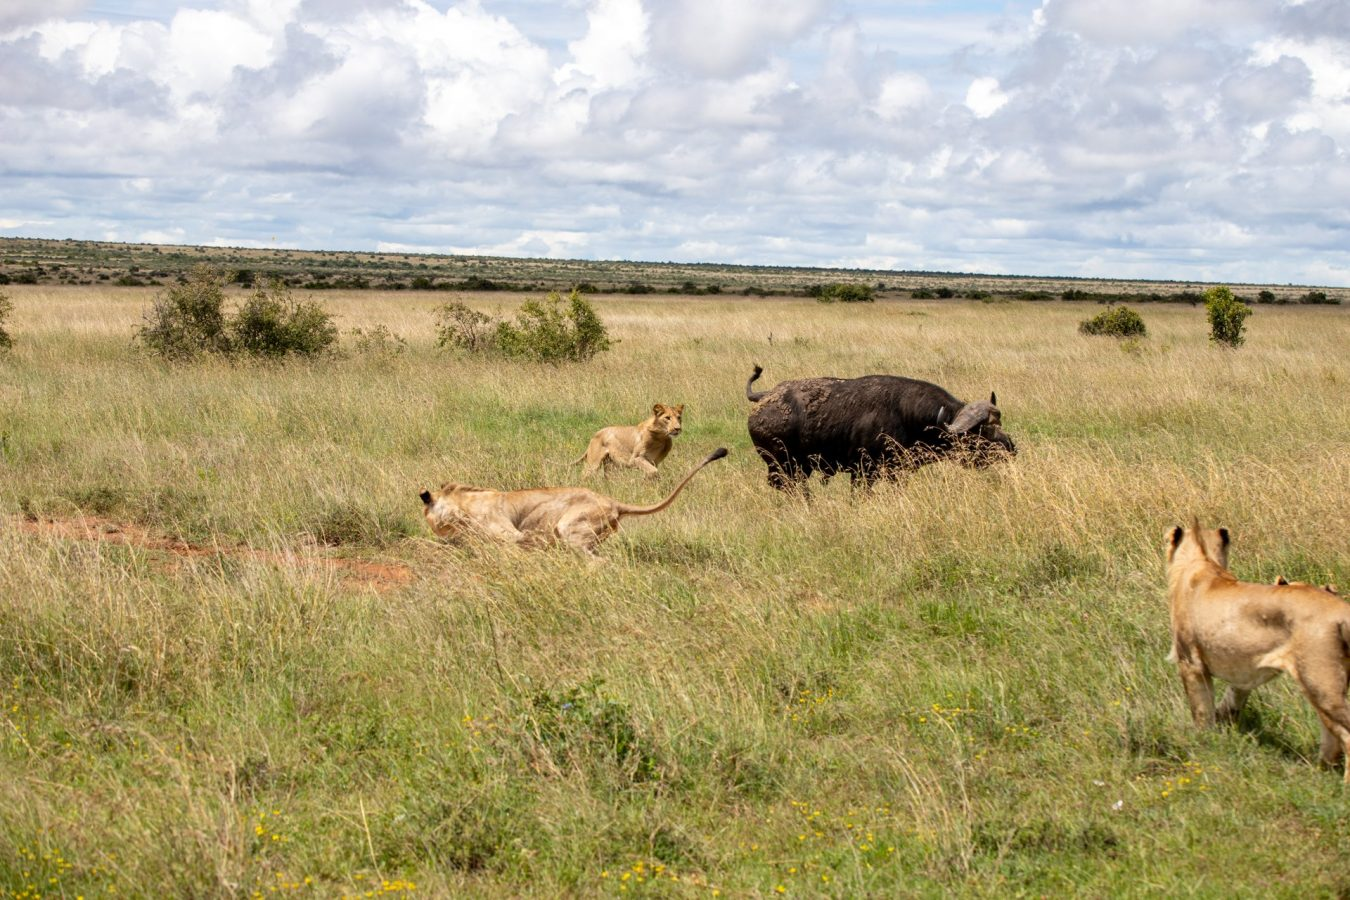 the lions chased the buffalo